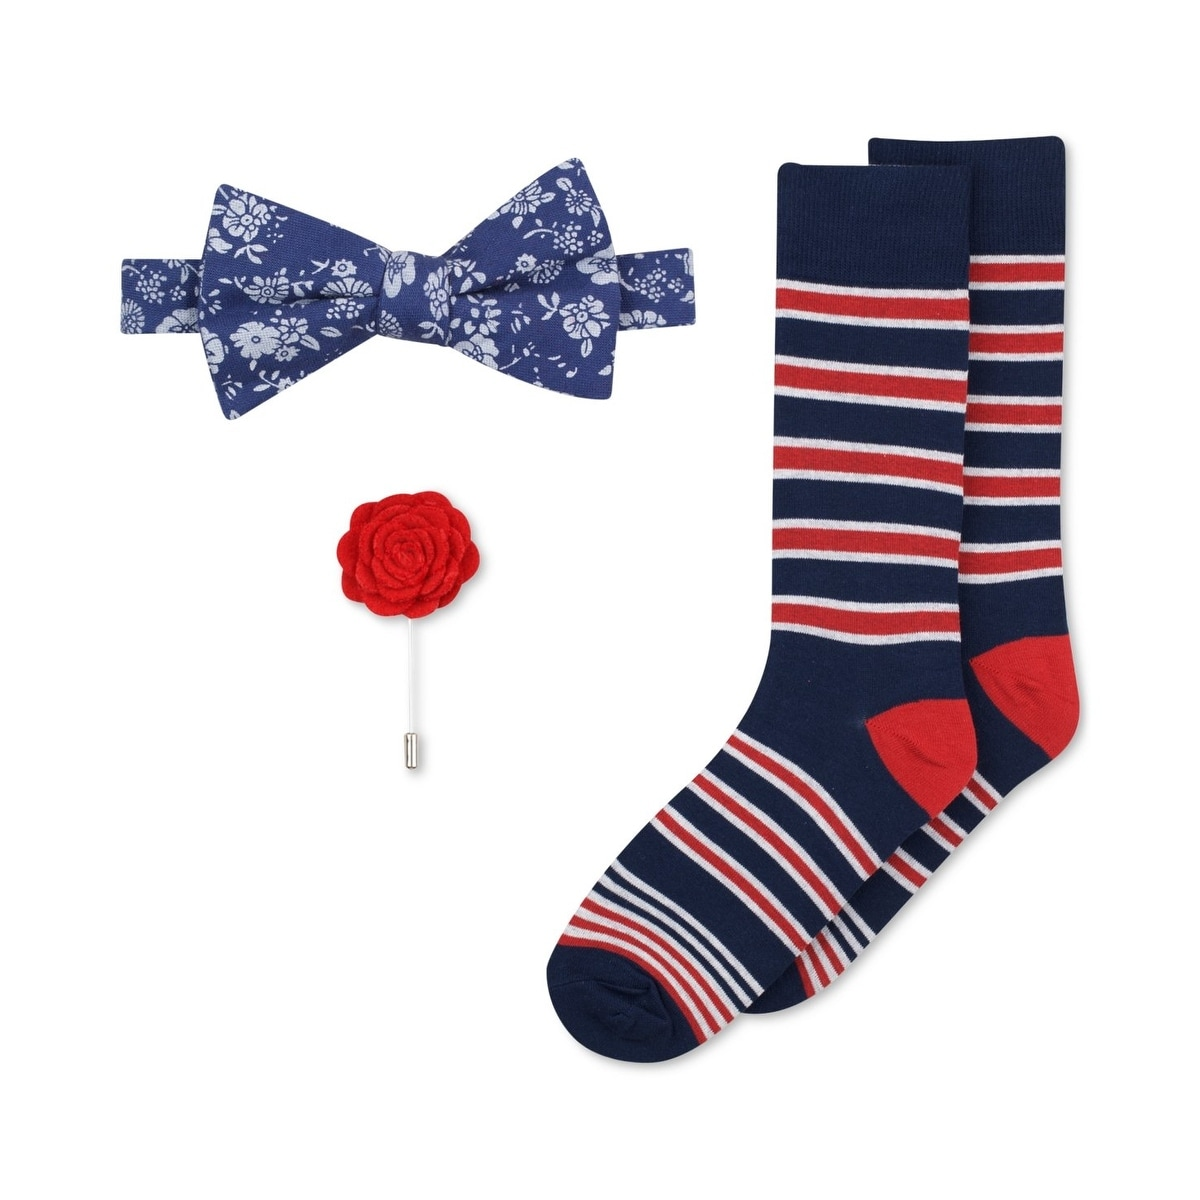 95d0b8a8d56c Shop Bar III NEW Blue Floral Pre-Tied Bow Tie, Flower Lapel & Socks Mens  Set - Free Shipping On Orders Over $45 - Overstock - 20545332